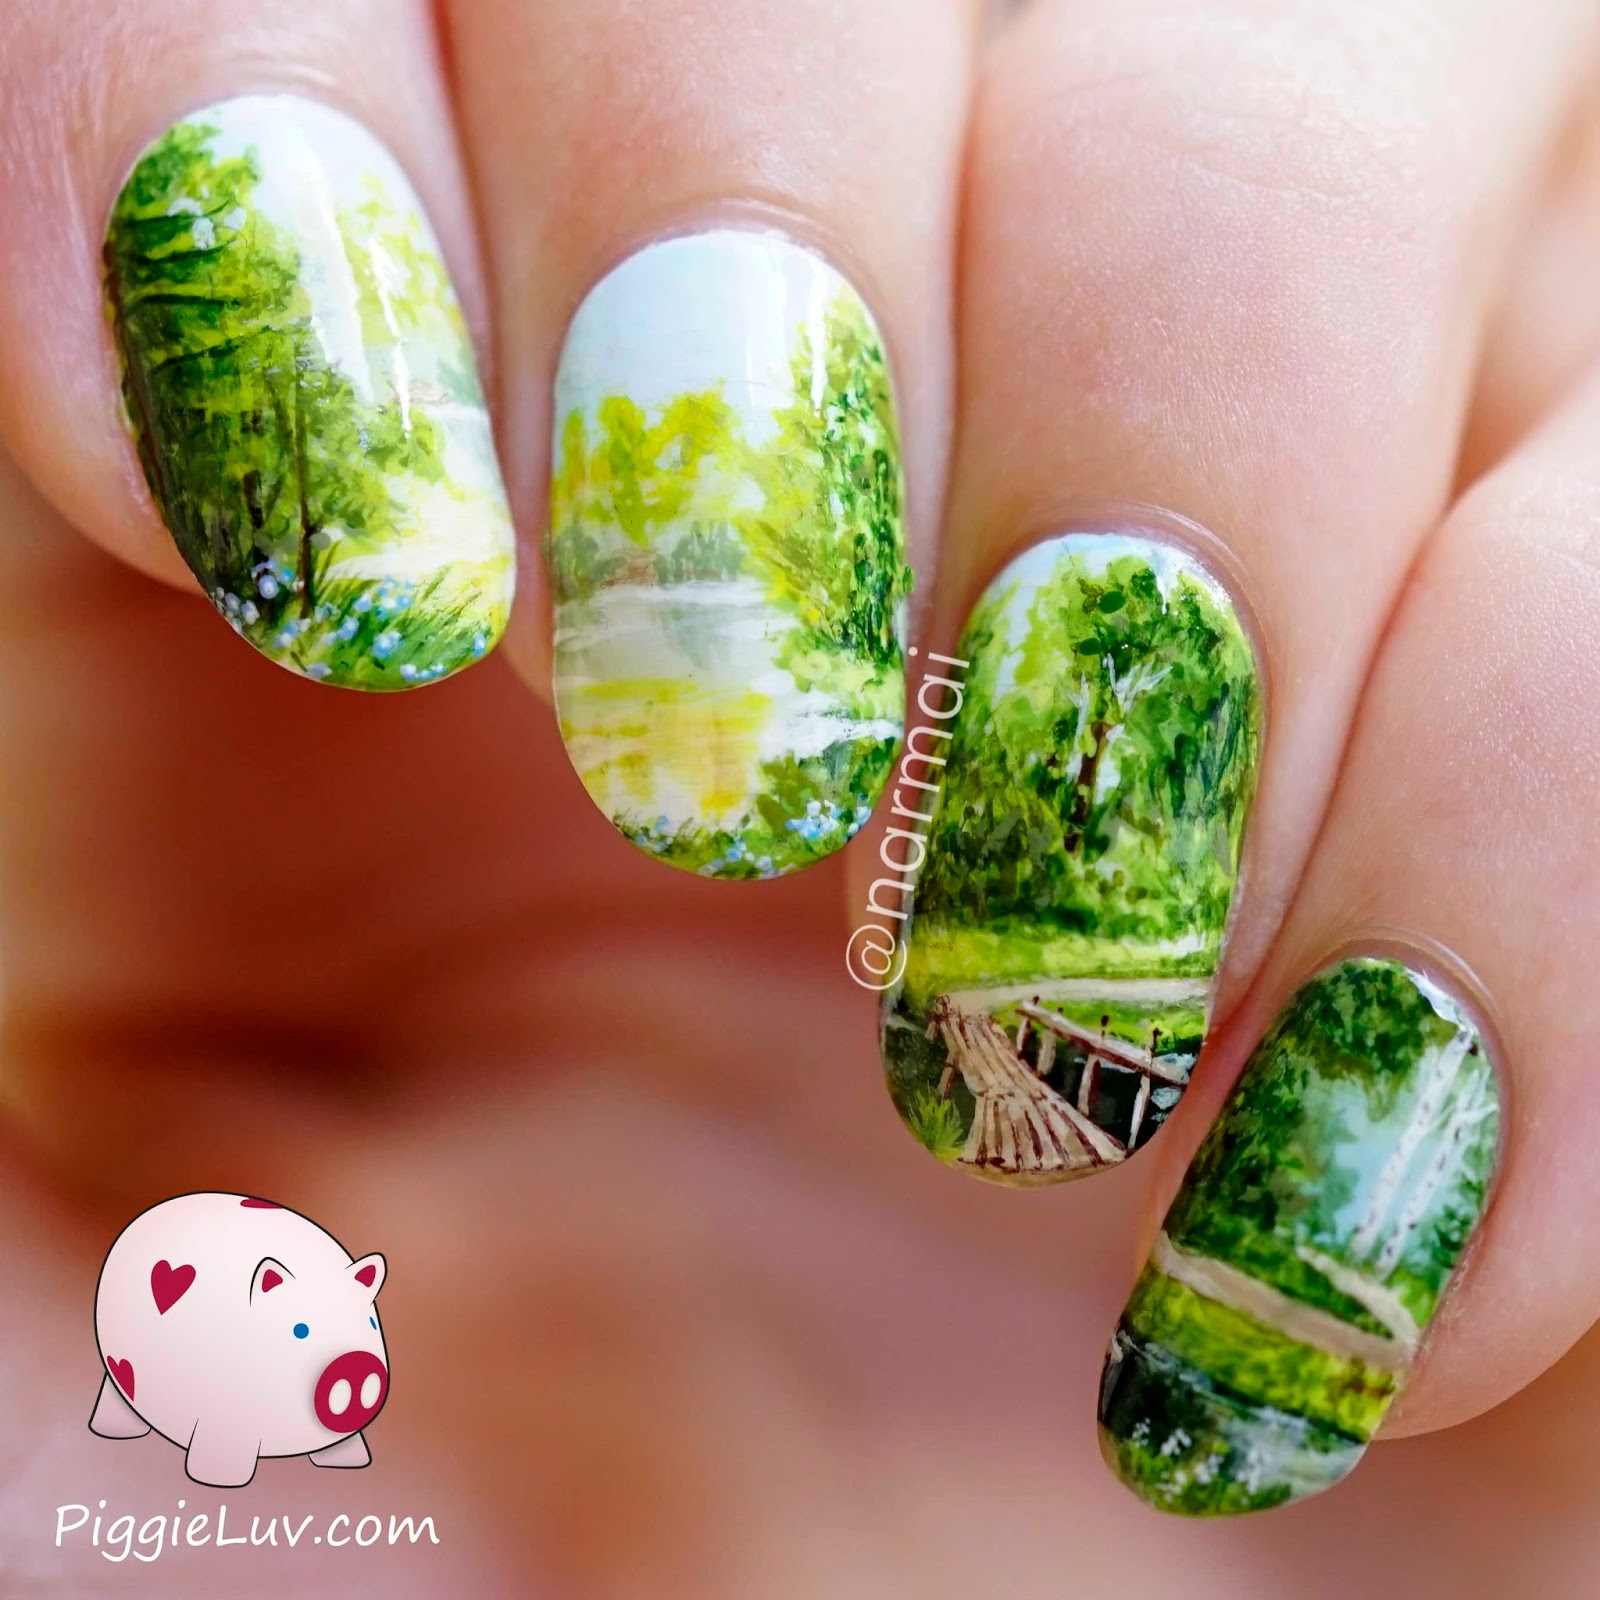 Piggieluv Freehand Path To Serenity Nail Art